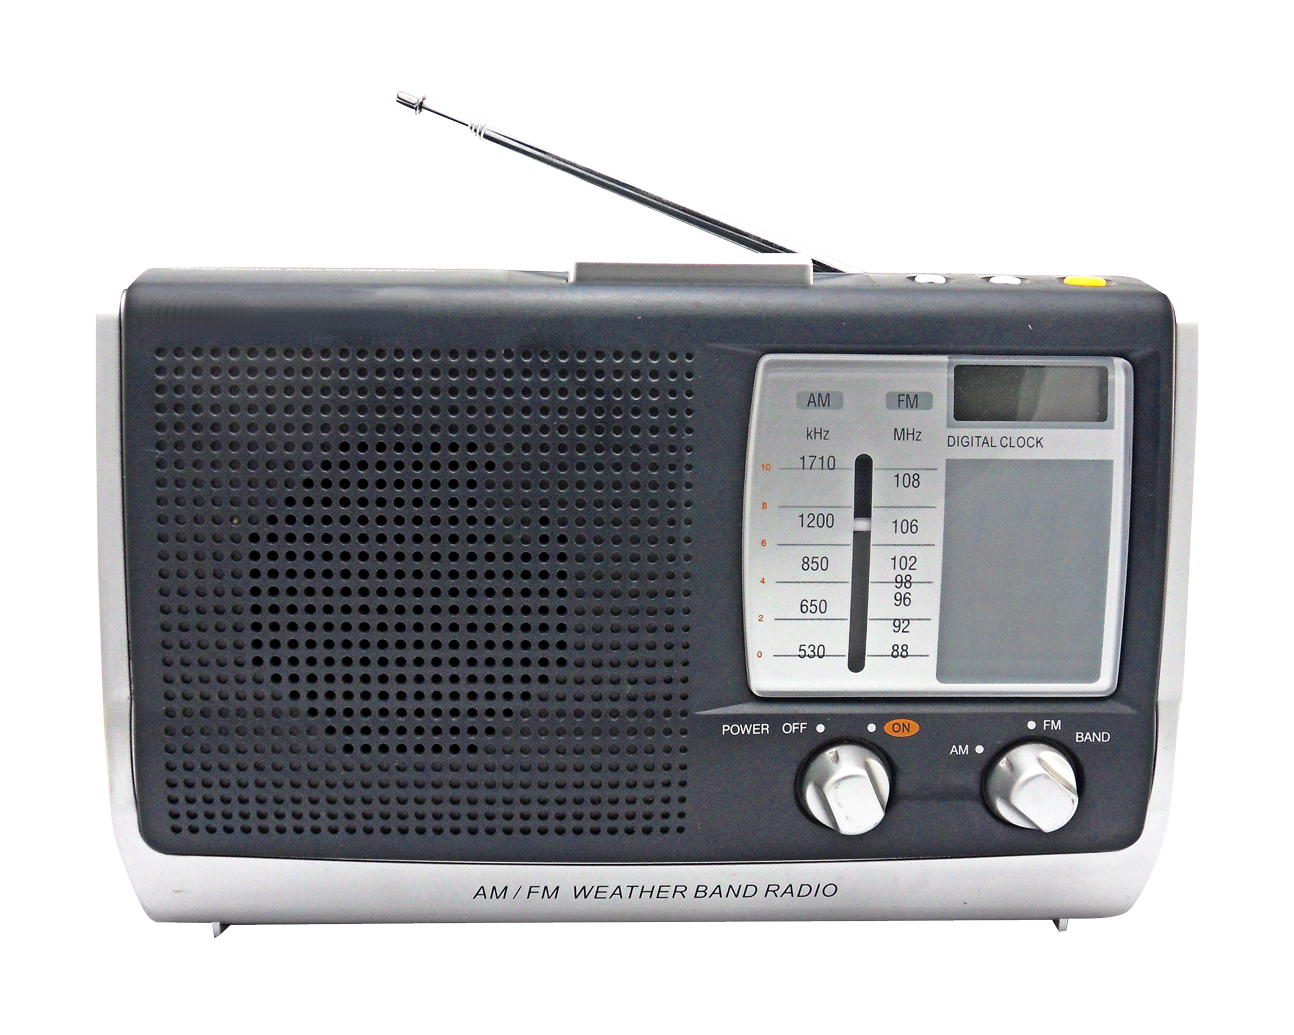 Radio png images. Transparent all download